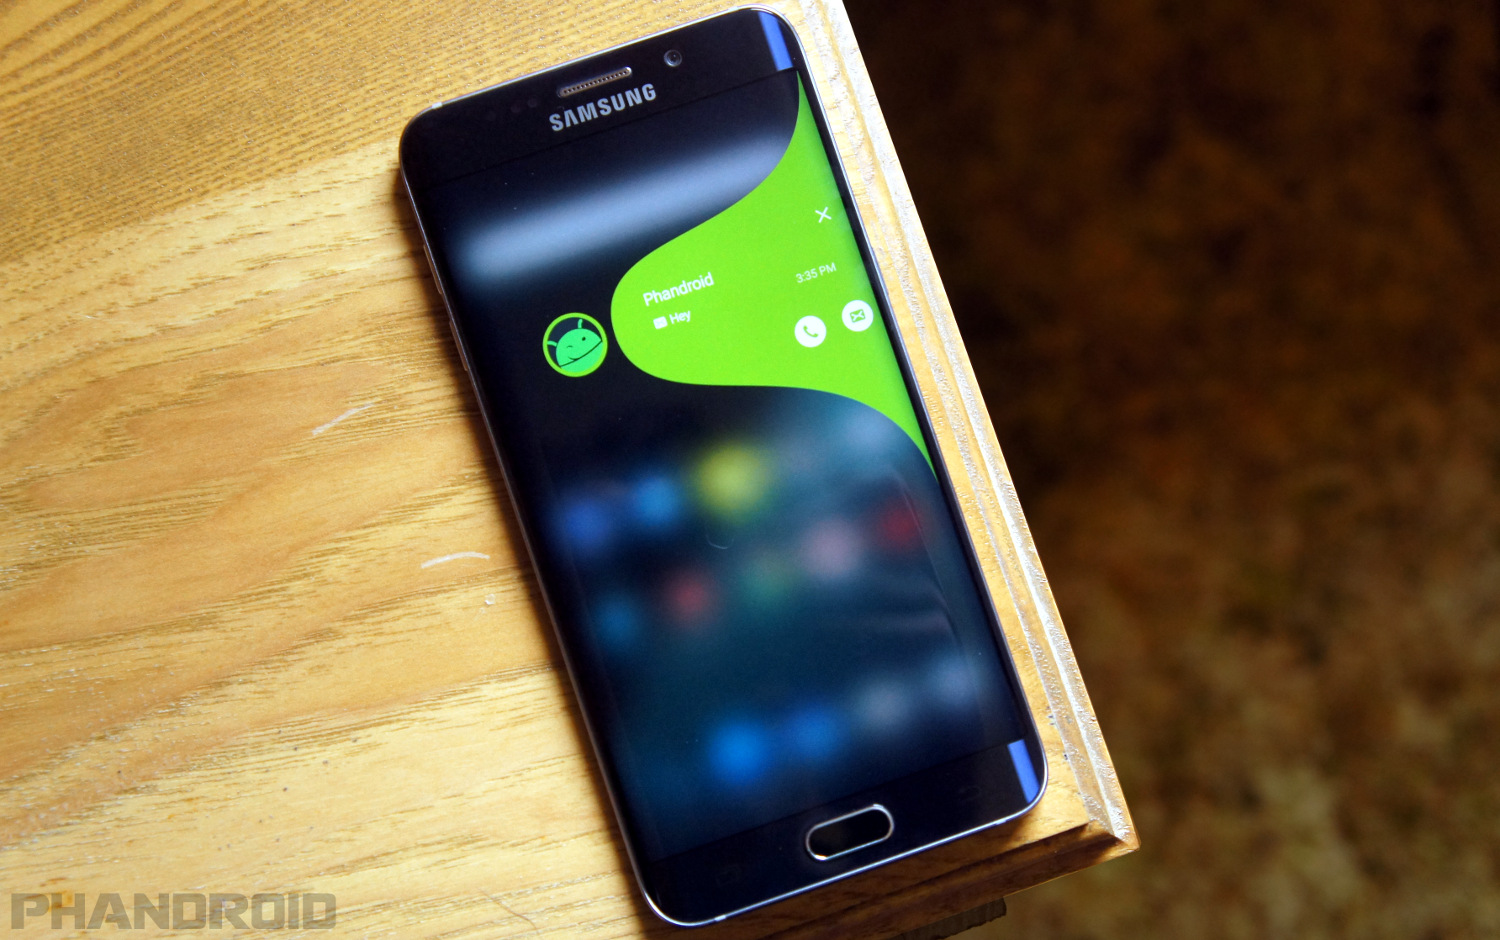 Samsung Galaxy S6 Edge Plus: Update Increases Battery Life